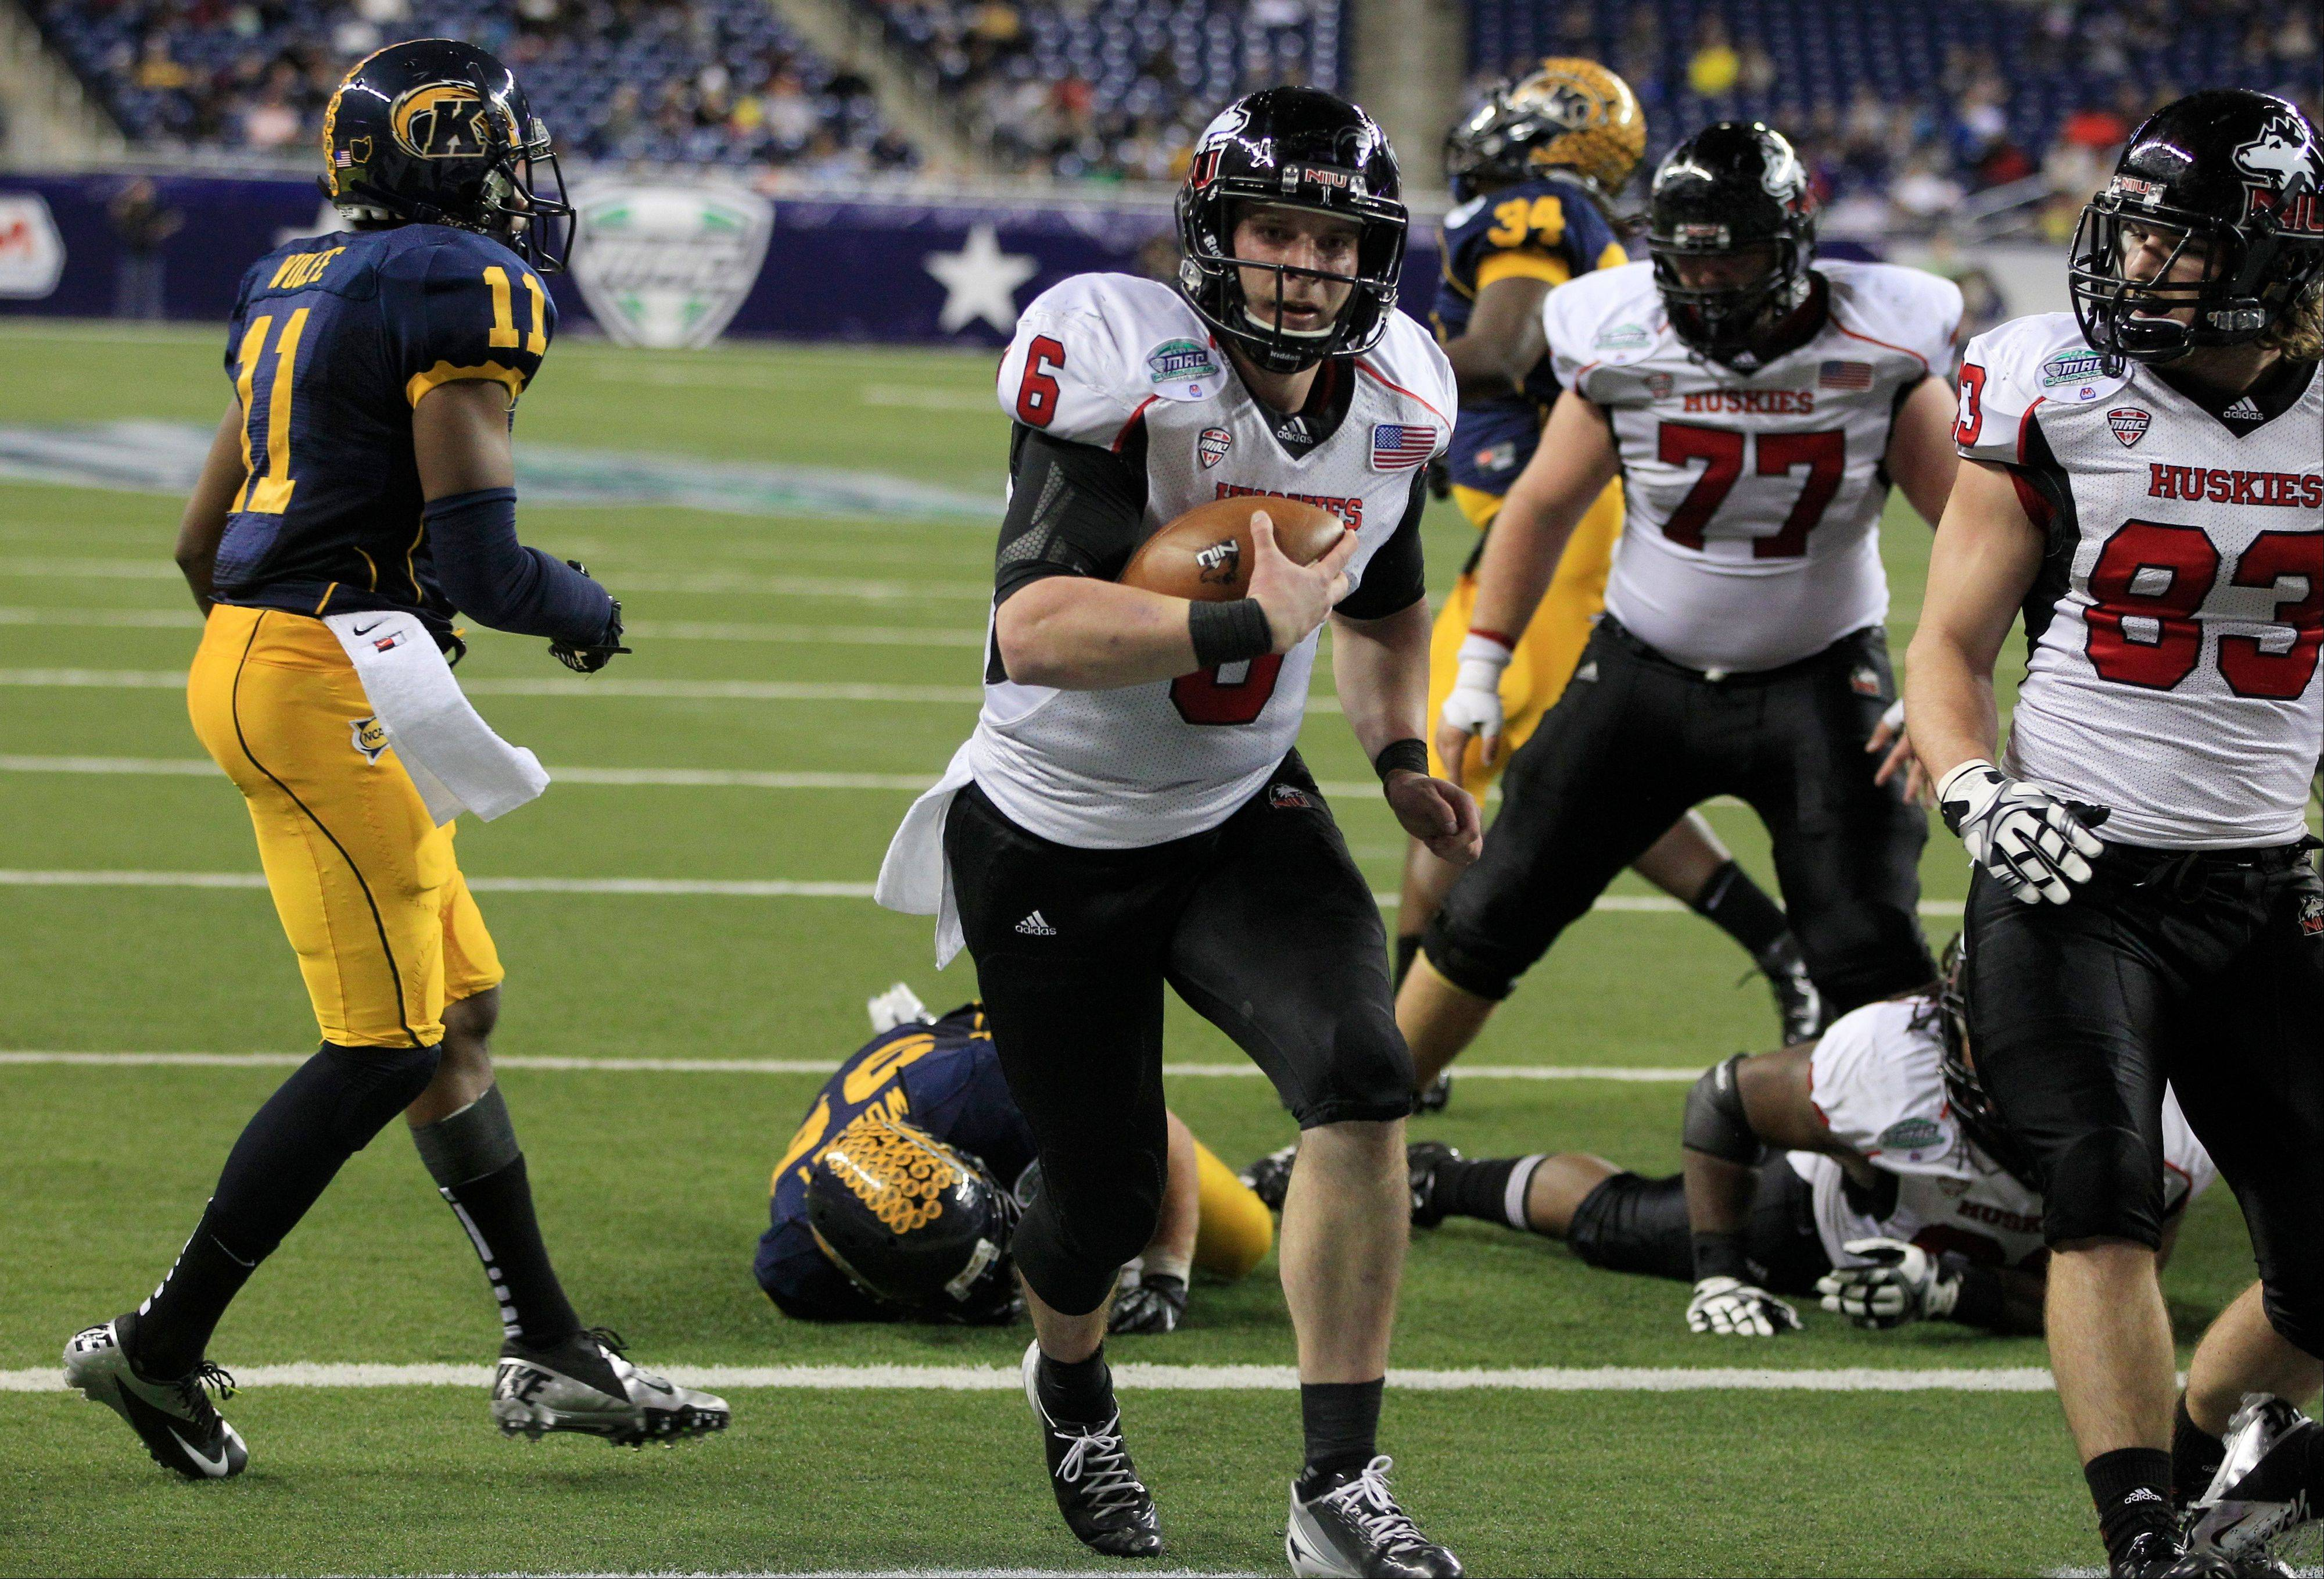 Northern Illinois quarterback Jordan Lynch scores on a 1-yard run Friday during the third quarter of the Mid-American Conference championship game against Kent State in Detroit.